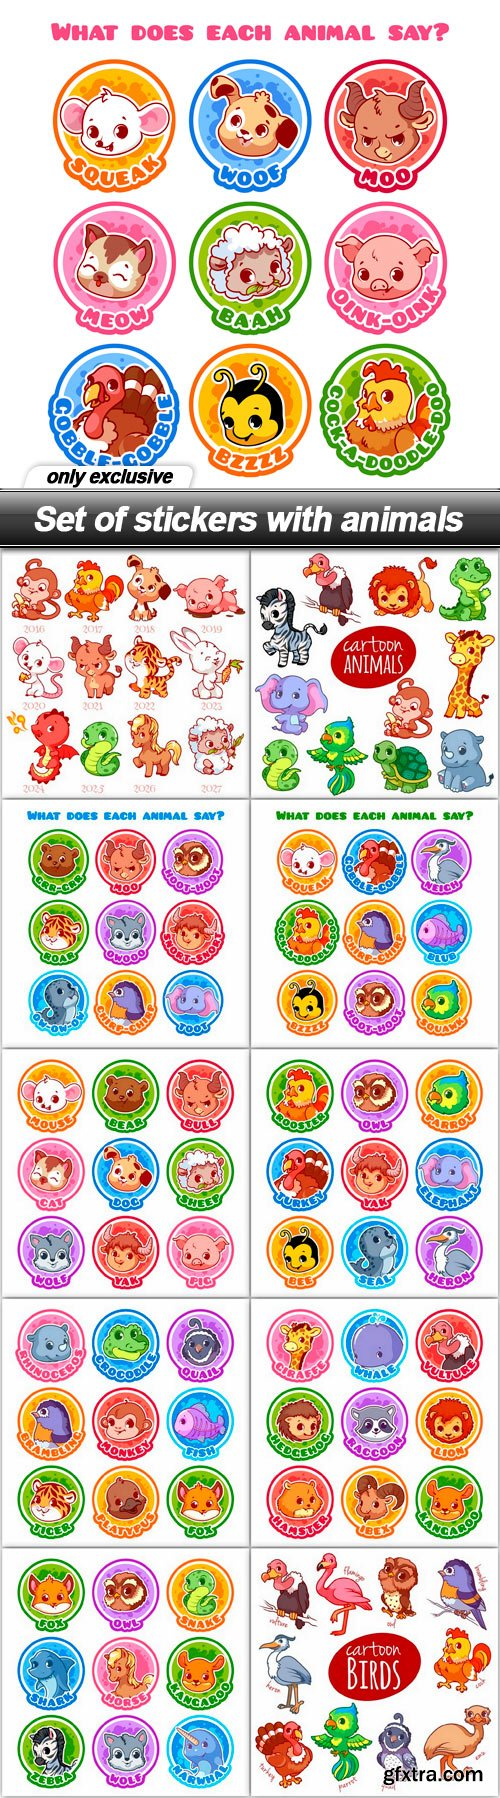 Set of stickers with animals - 11 EPS